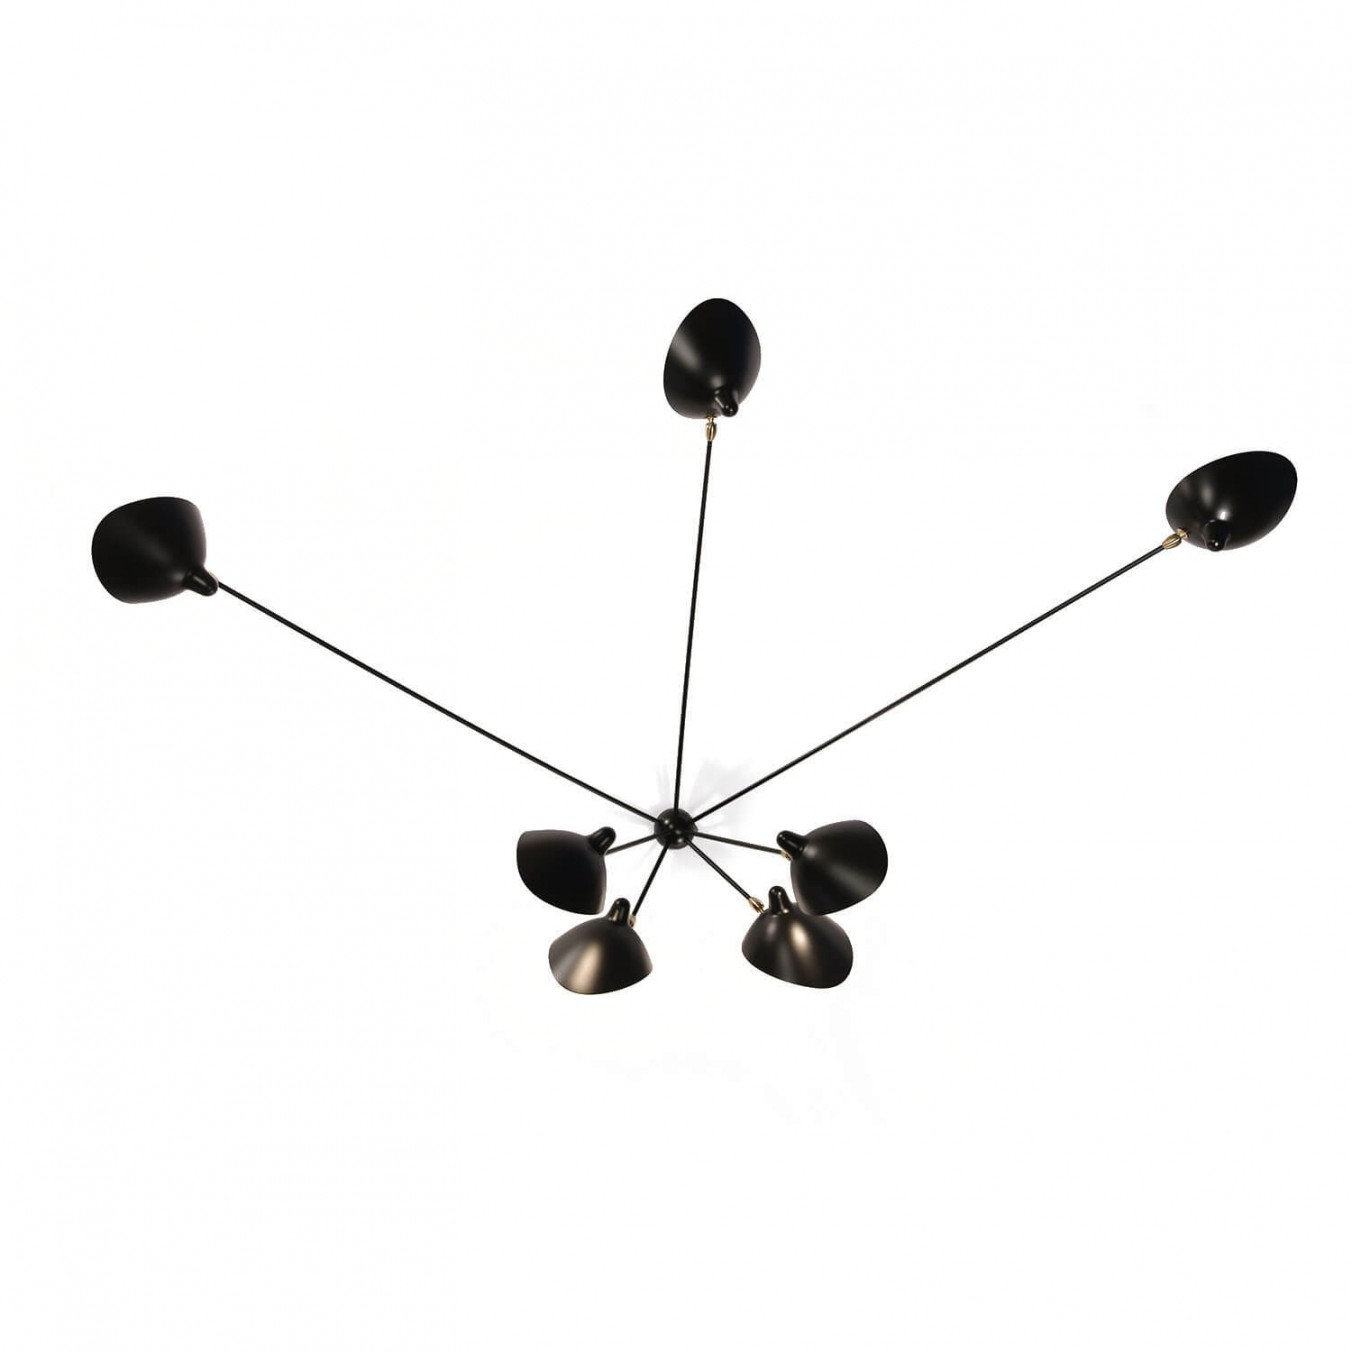 Spider Wall Light with 7 fixed arms